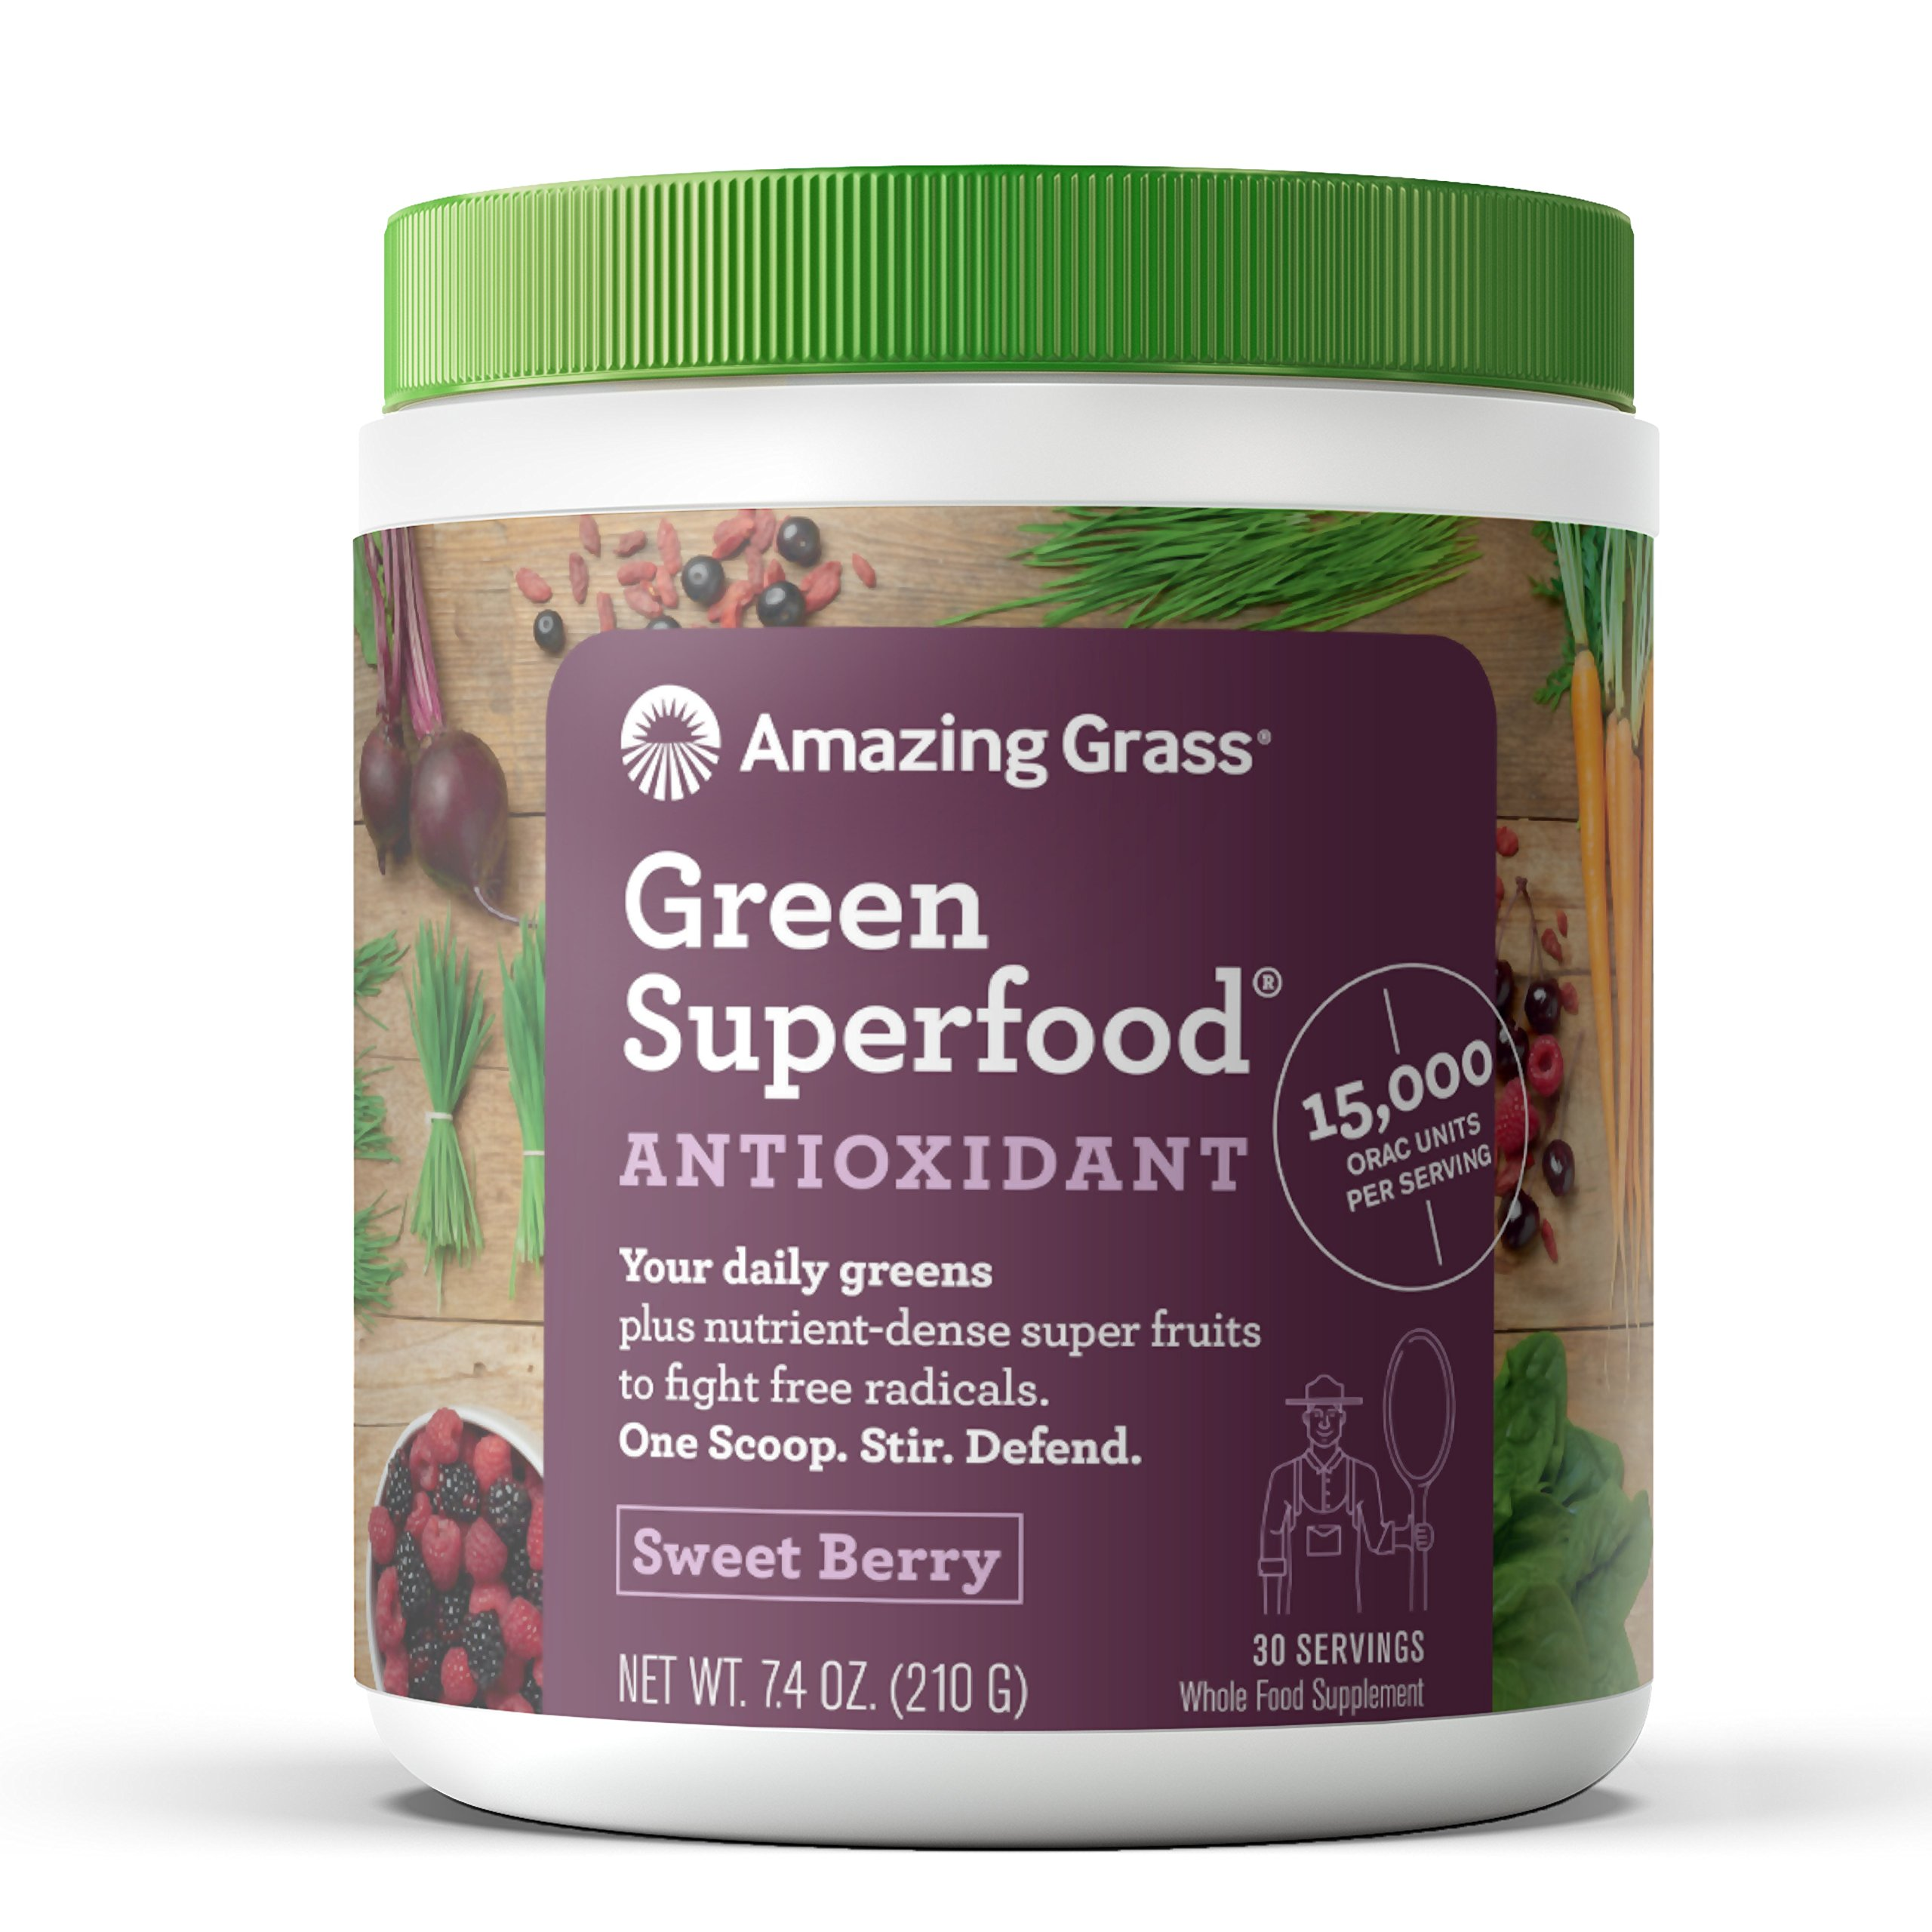 Amazing Grass Green Superfood Antioxidant: Organic Plant Based Antioxidant and Wheat Grass Powder for full body recovery, 8 servings of Fruits and Veggies per Scoop, Sweet Berry Flavor, 30 Servings by Amazing Grass